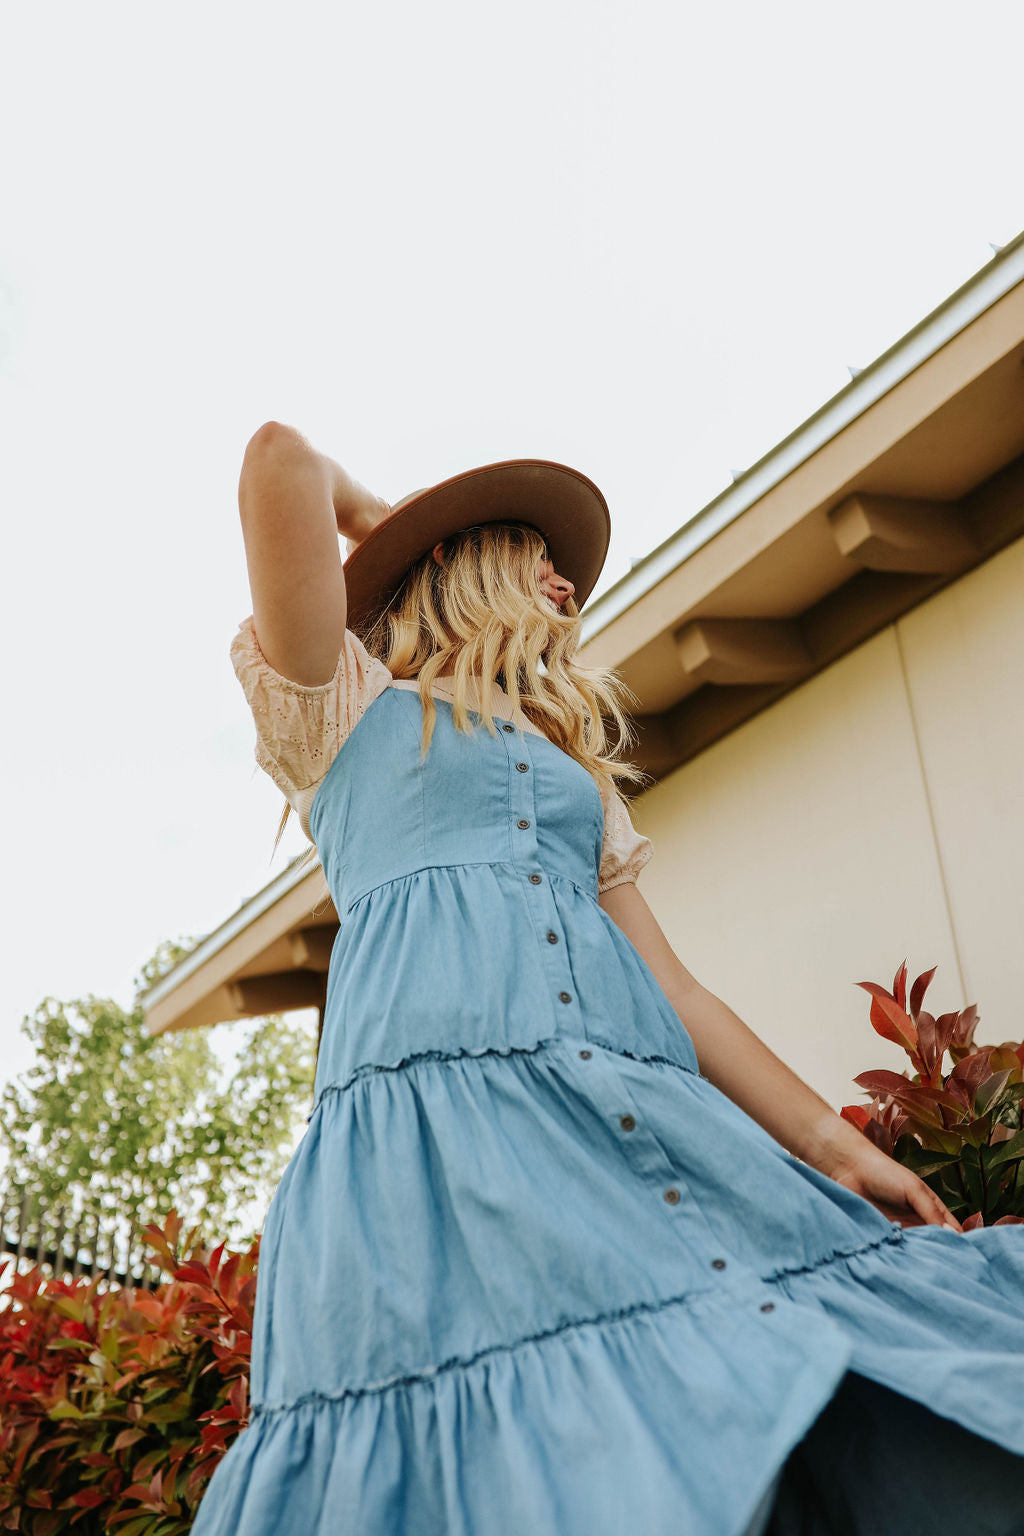 THE WAVERLY SLEEVELESS DRESS IN DENIM